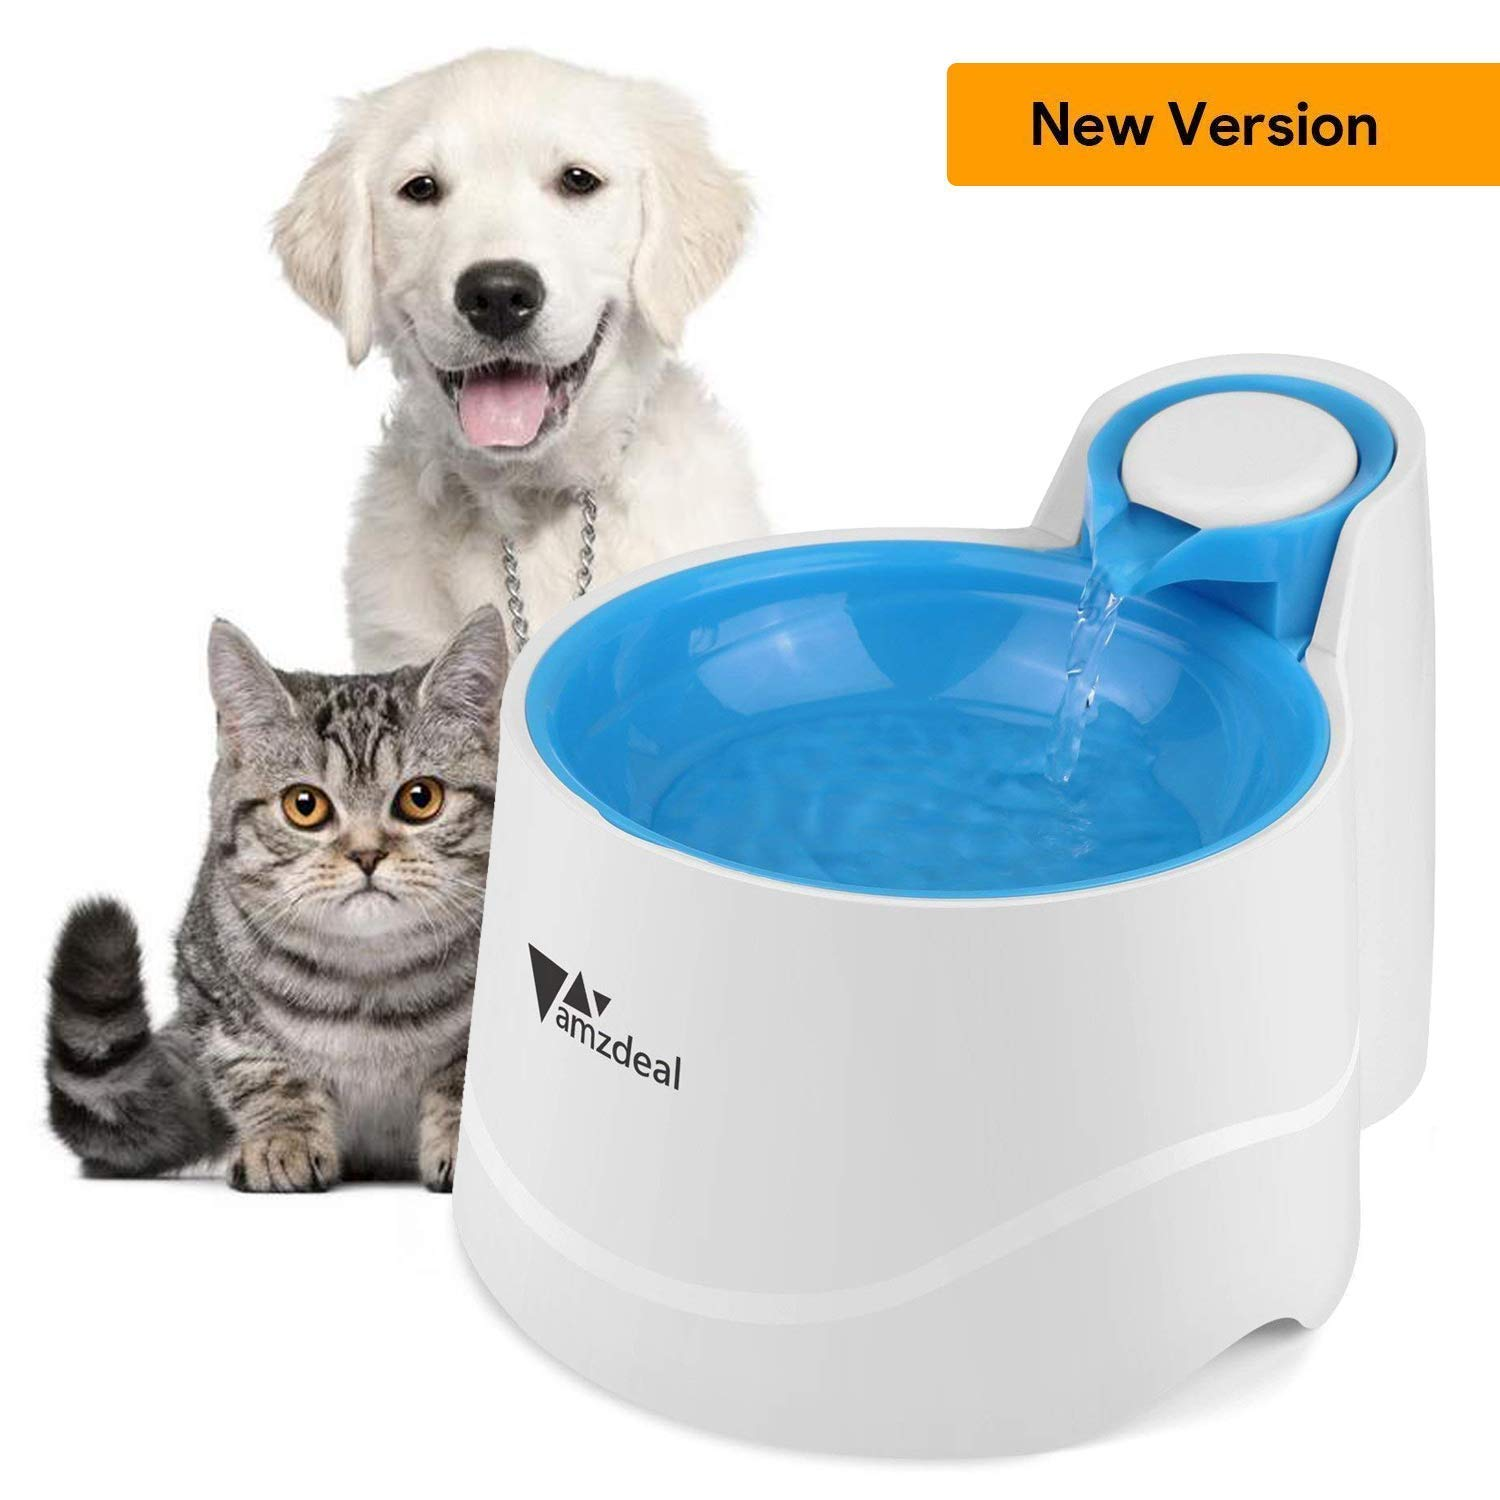 amzdeal Cat Water Fountain Pet Fountain Automatic Water Bowl Pet Water Dispenser with LED Light and Water Filters, Low Noise, 2 Liter/70 Ounces Blue